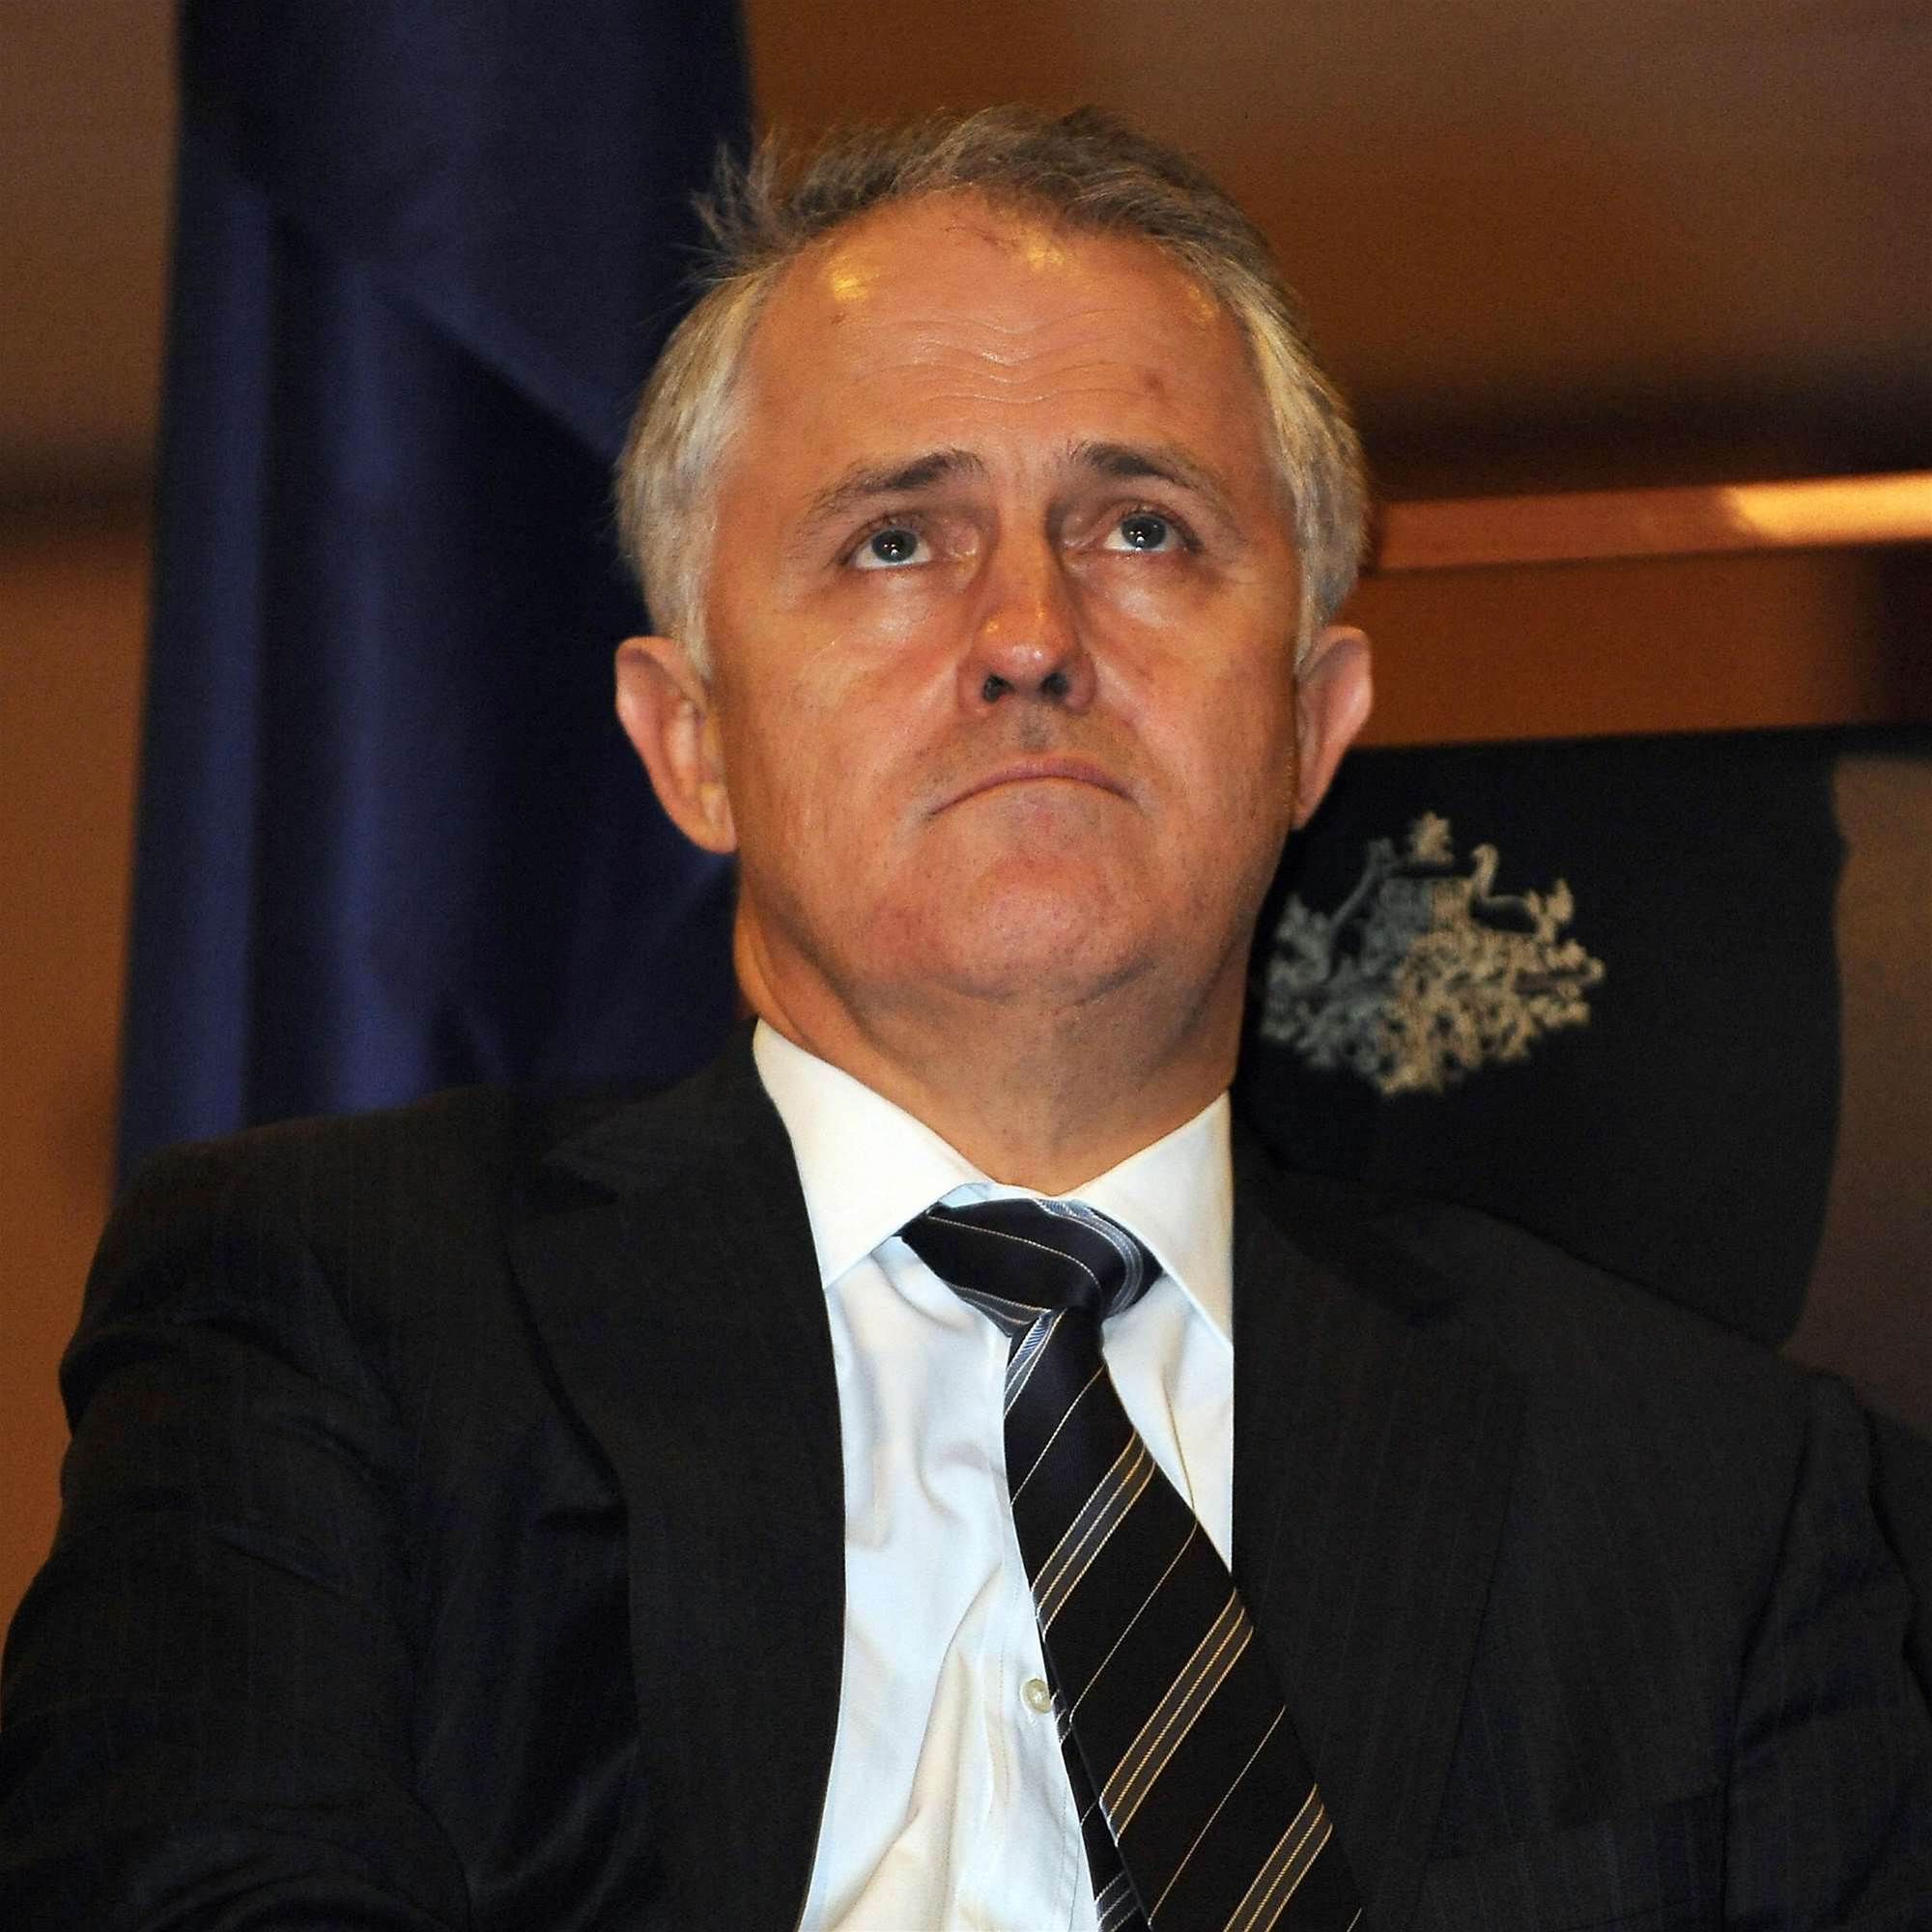 Turnbull warns on data retention laws